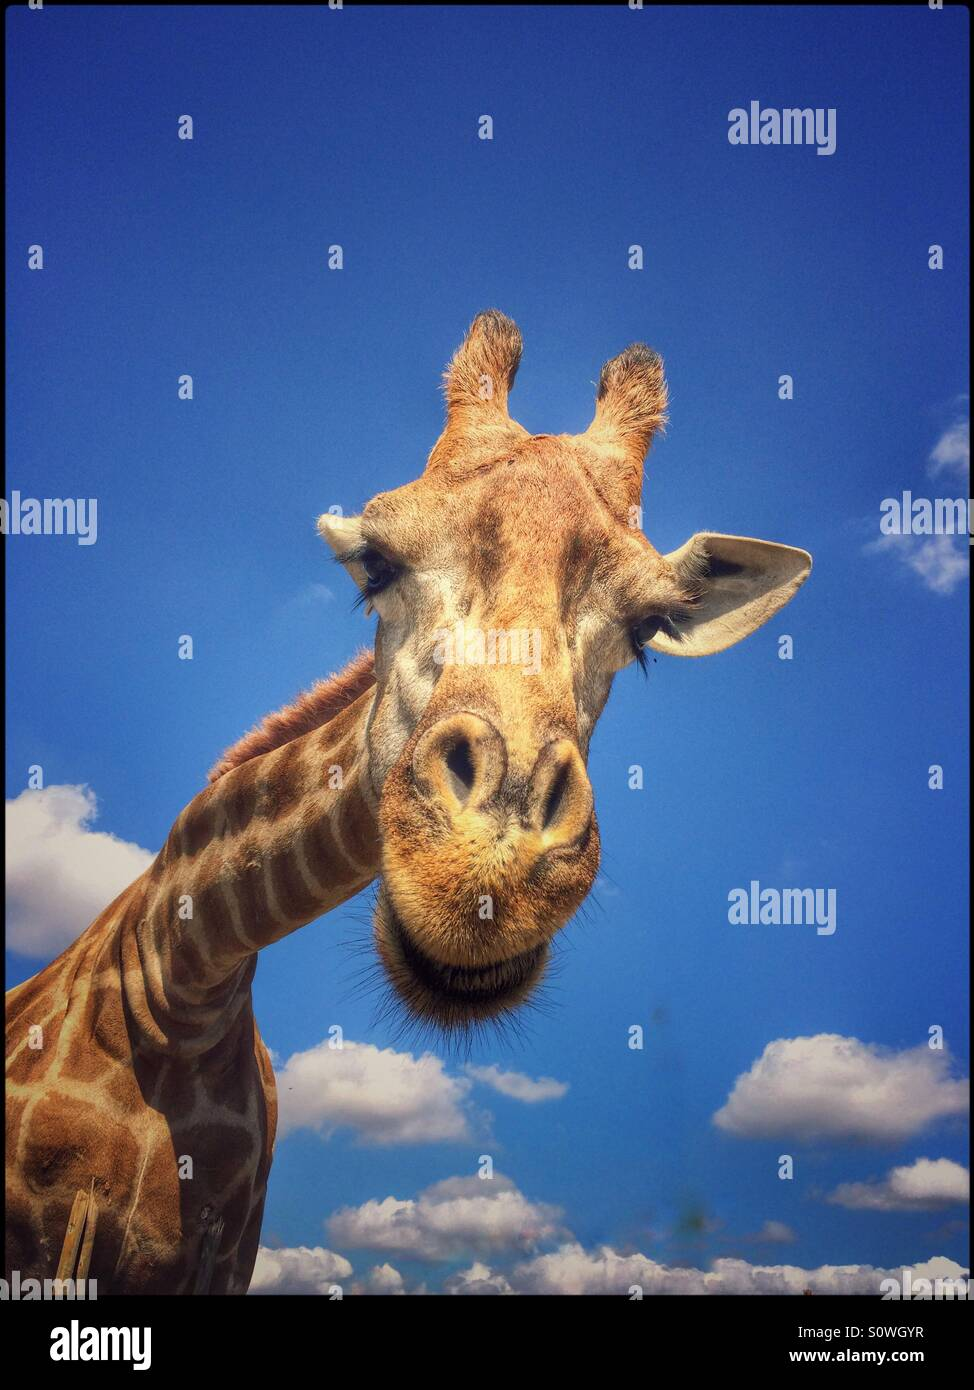 Girafe. Photo Stock